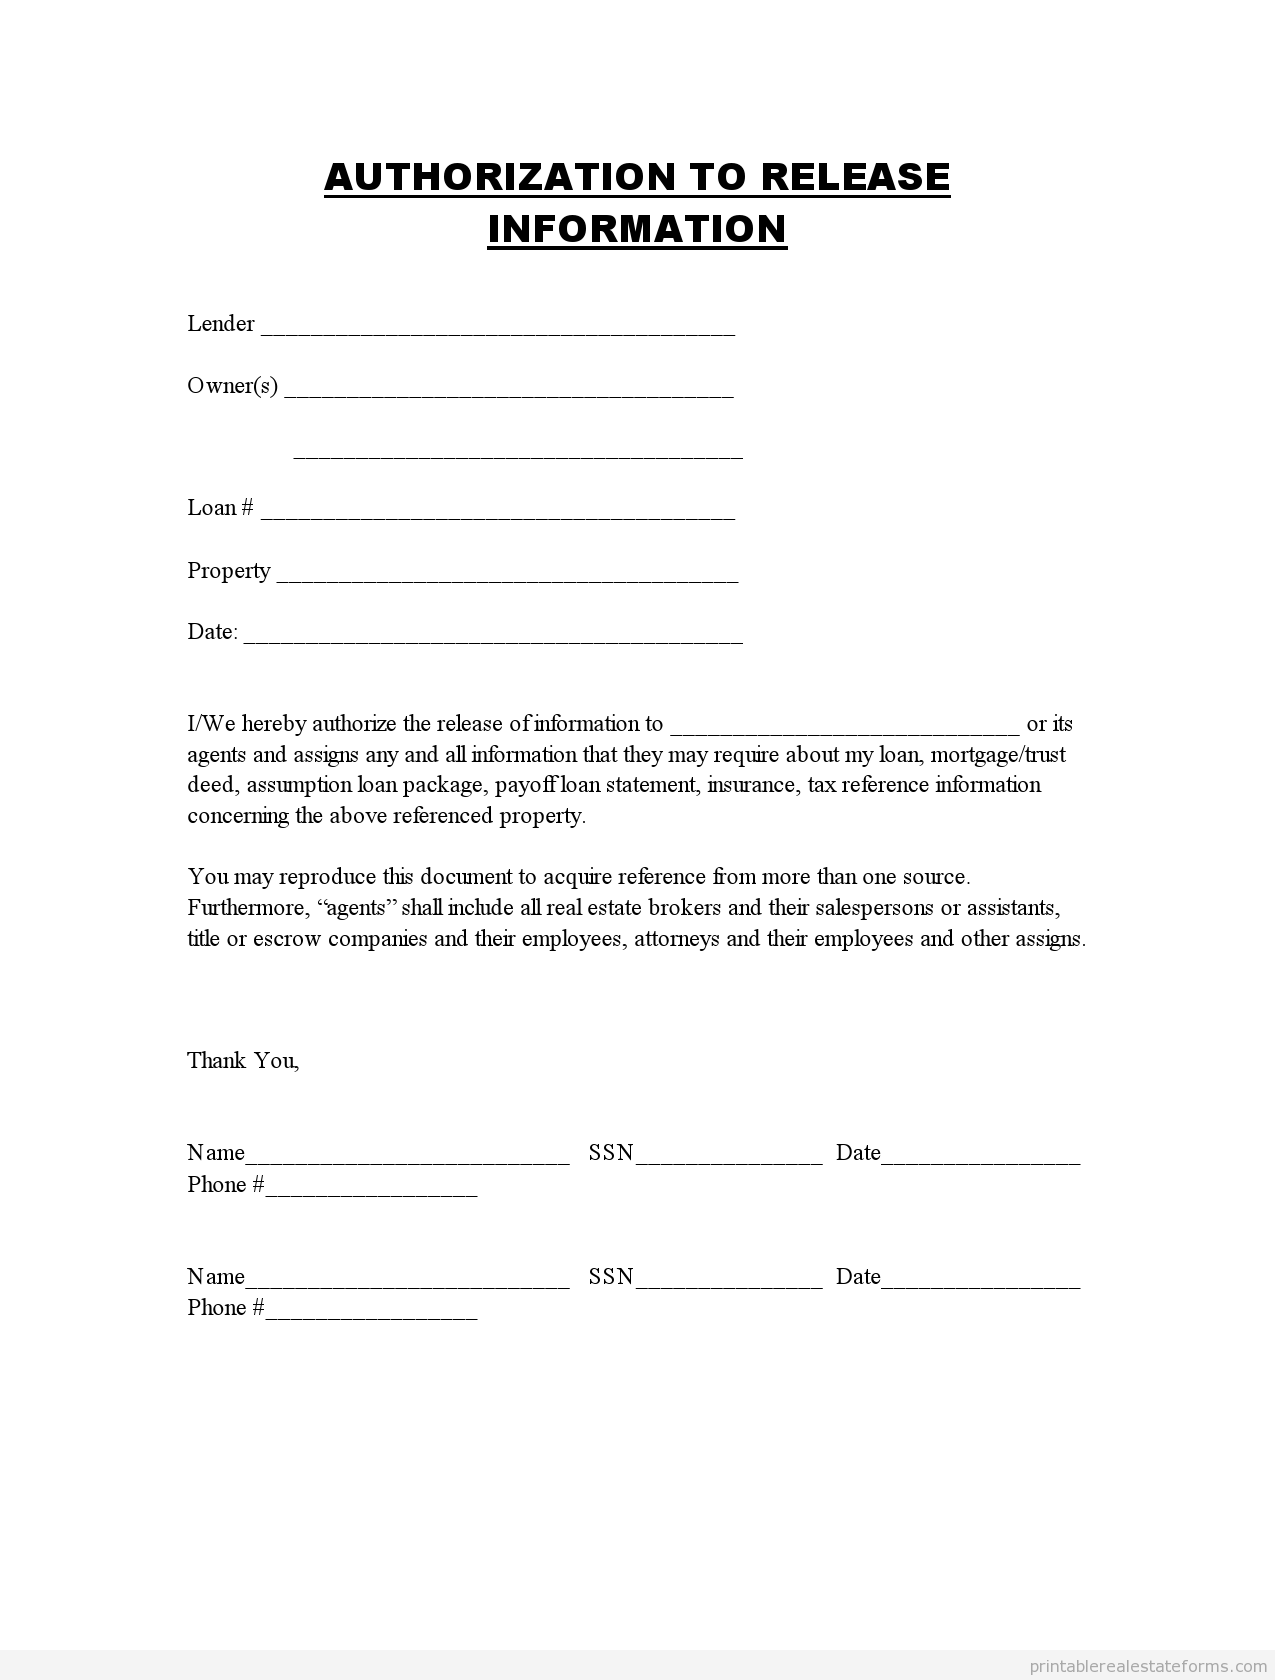 Printable authorization to release information template 2015 ...